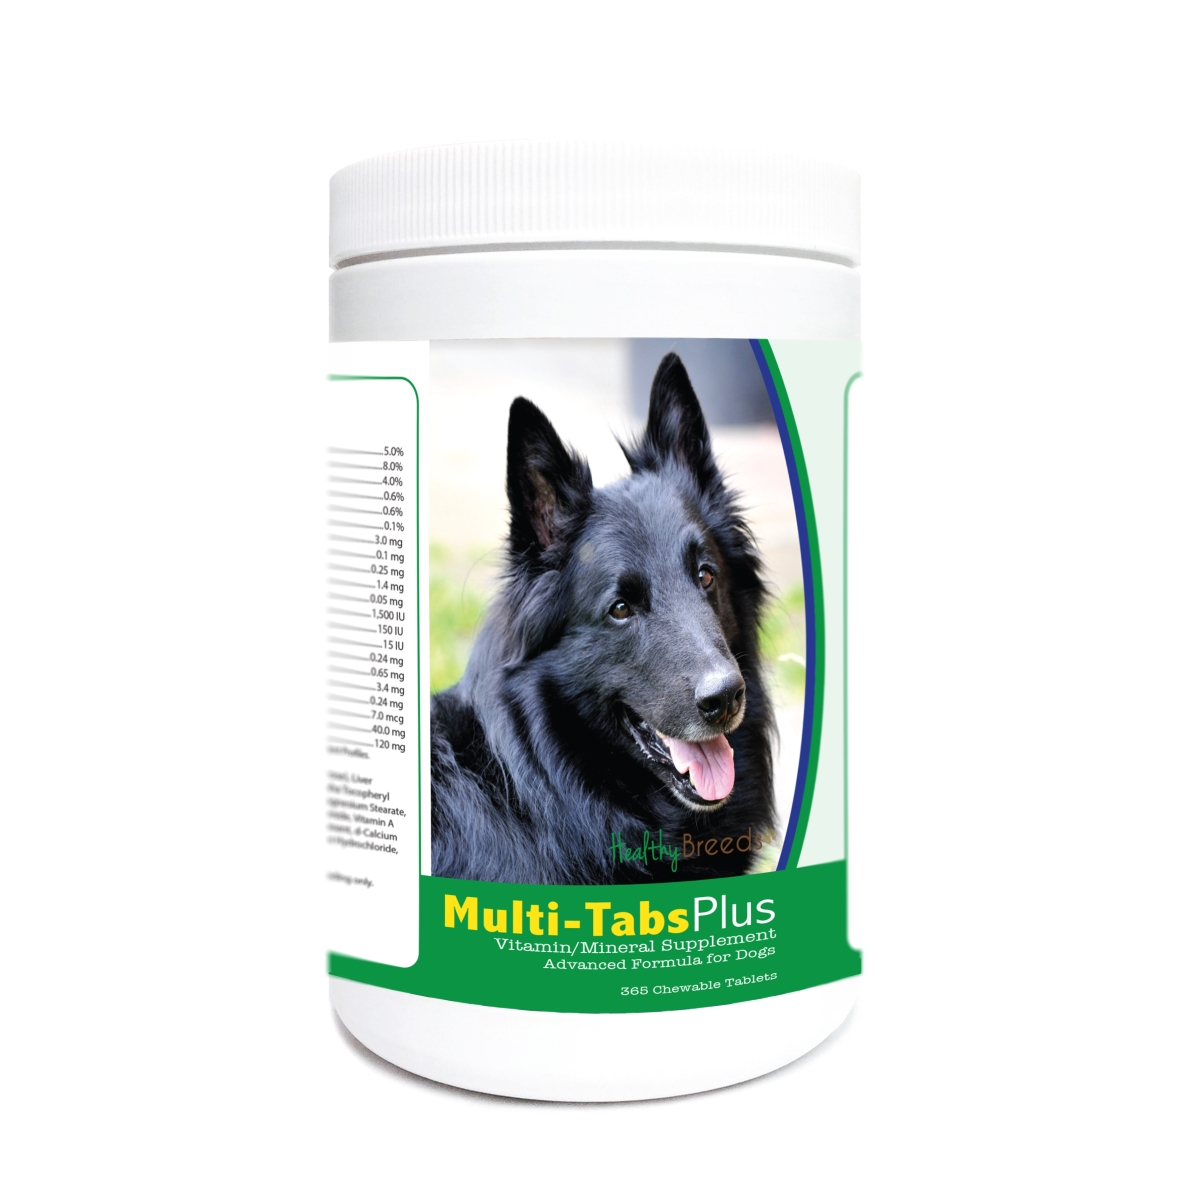 Healthy Breeds 840235179733 Belgian Sheepdog Multi-Tabs Plus Chewable Tablets - 365 Count